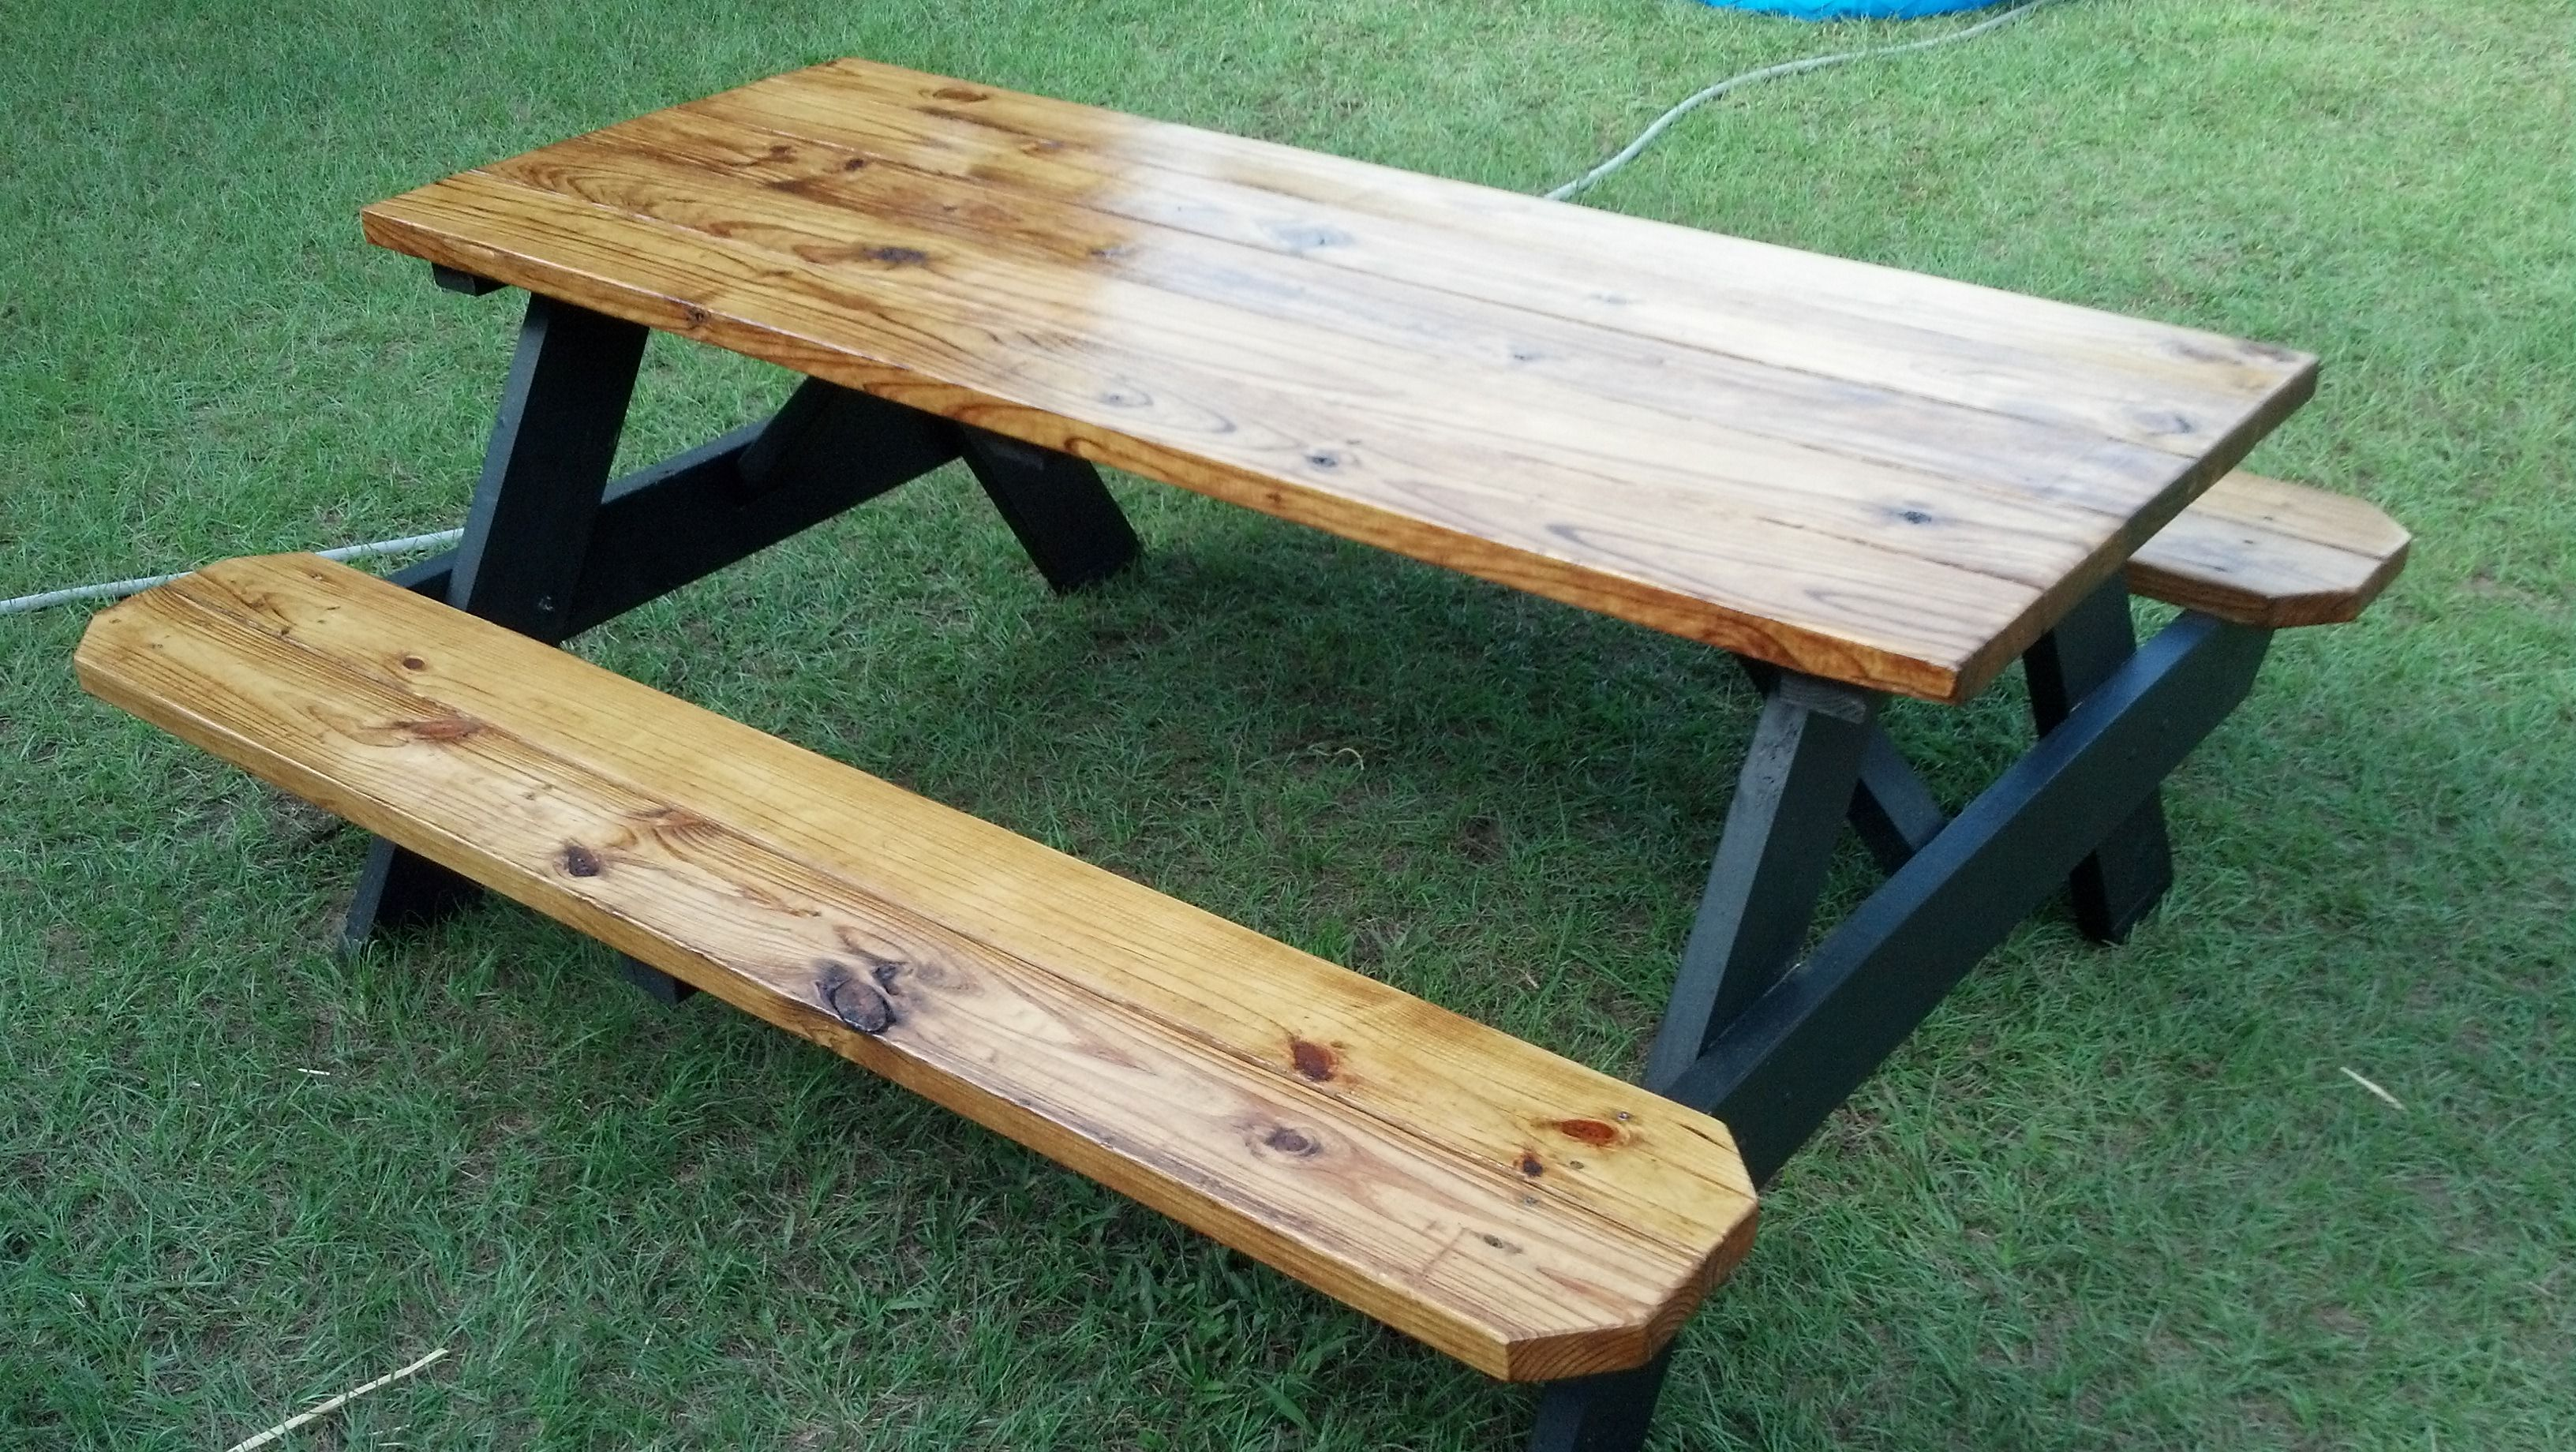 Search On Ebay Cdr3333 For More Another Way To Finish A Picnic Table Picnic Table Makeover Picnic Table Diy Picnic Table